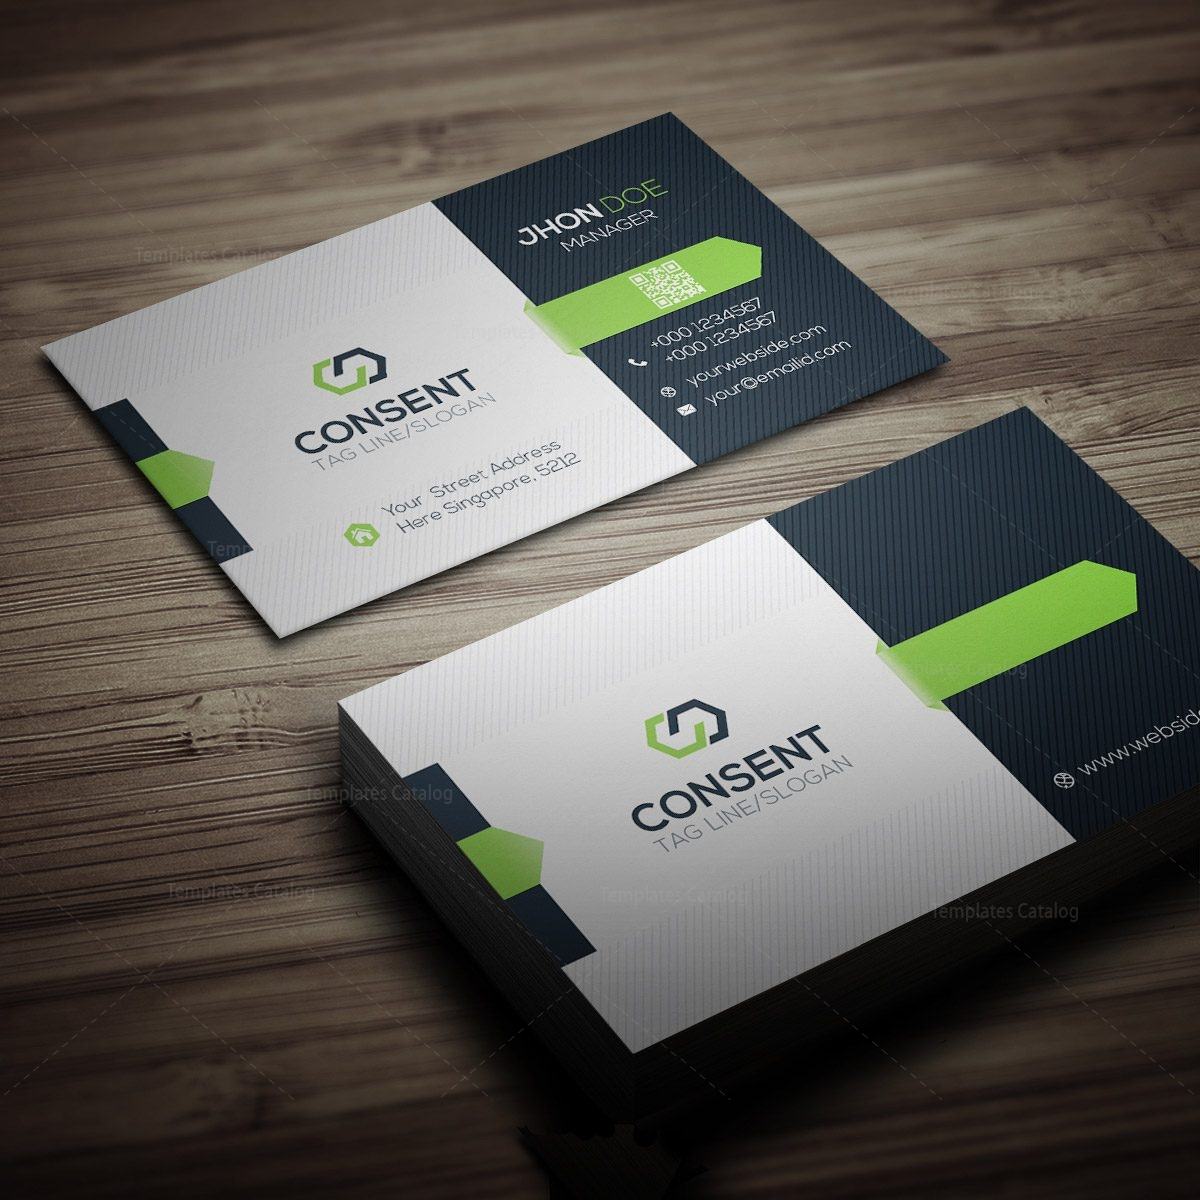 Consent Business Card Template Template Catalog - Business card templates